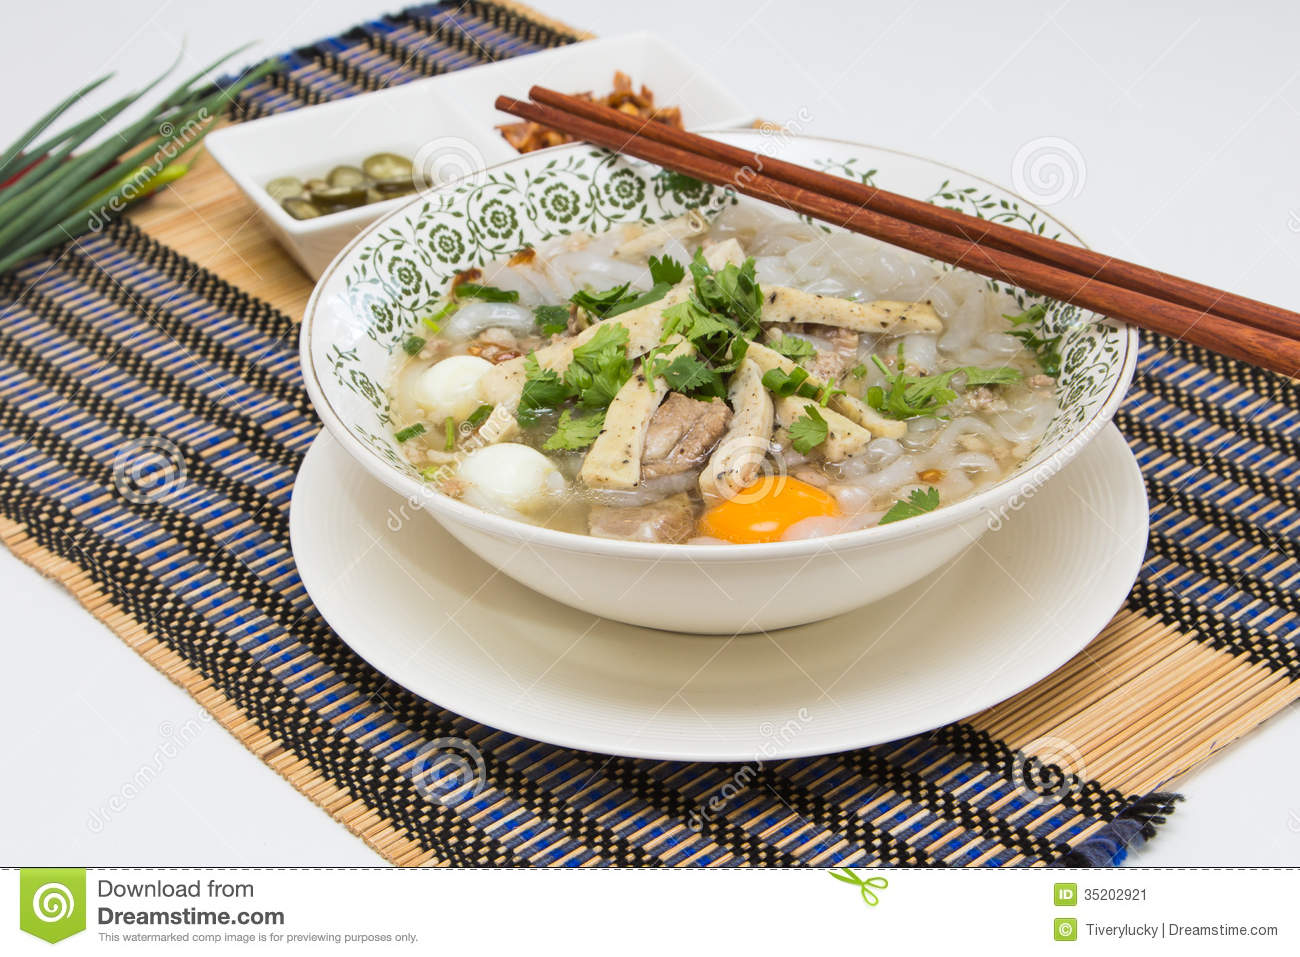 Vietnamese Food Stock Image   Image  35202921